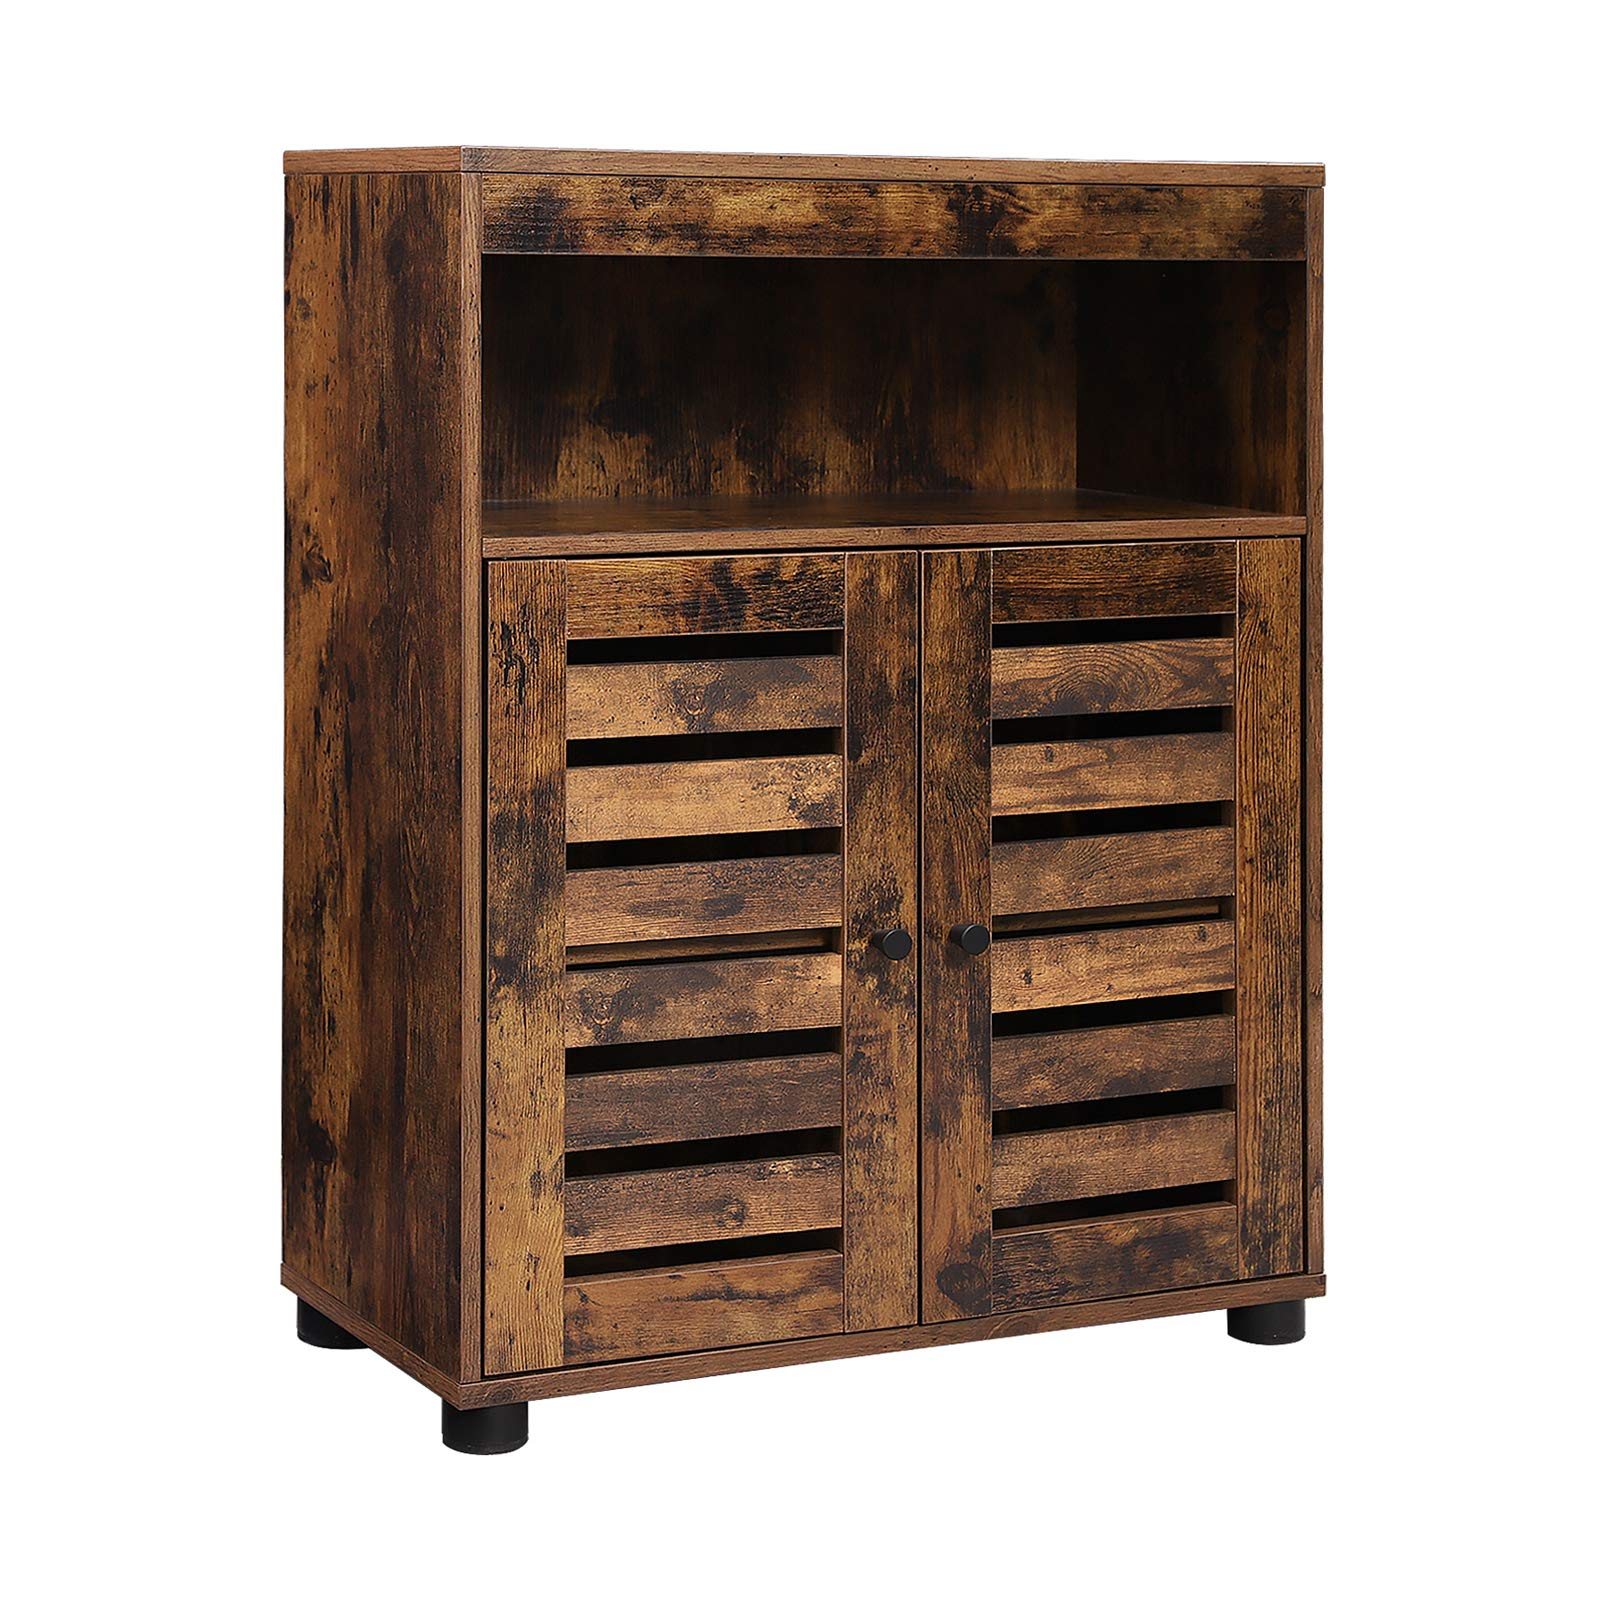 VASAGLE Storage Cabinet, Storage Cupboard, Rustic Chic Style, 60 x 30 x 80 cm, with Louvred Doors, Open Compartments, Adjustable Shelf, Rustic Brown BBK44BX